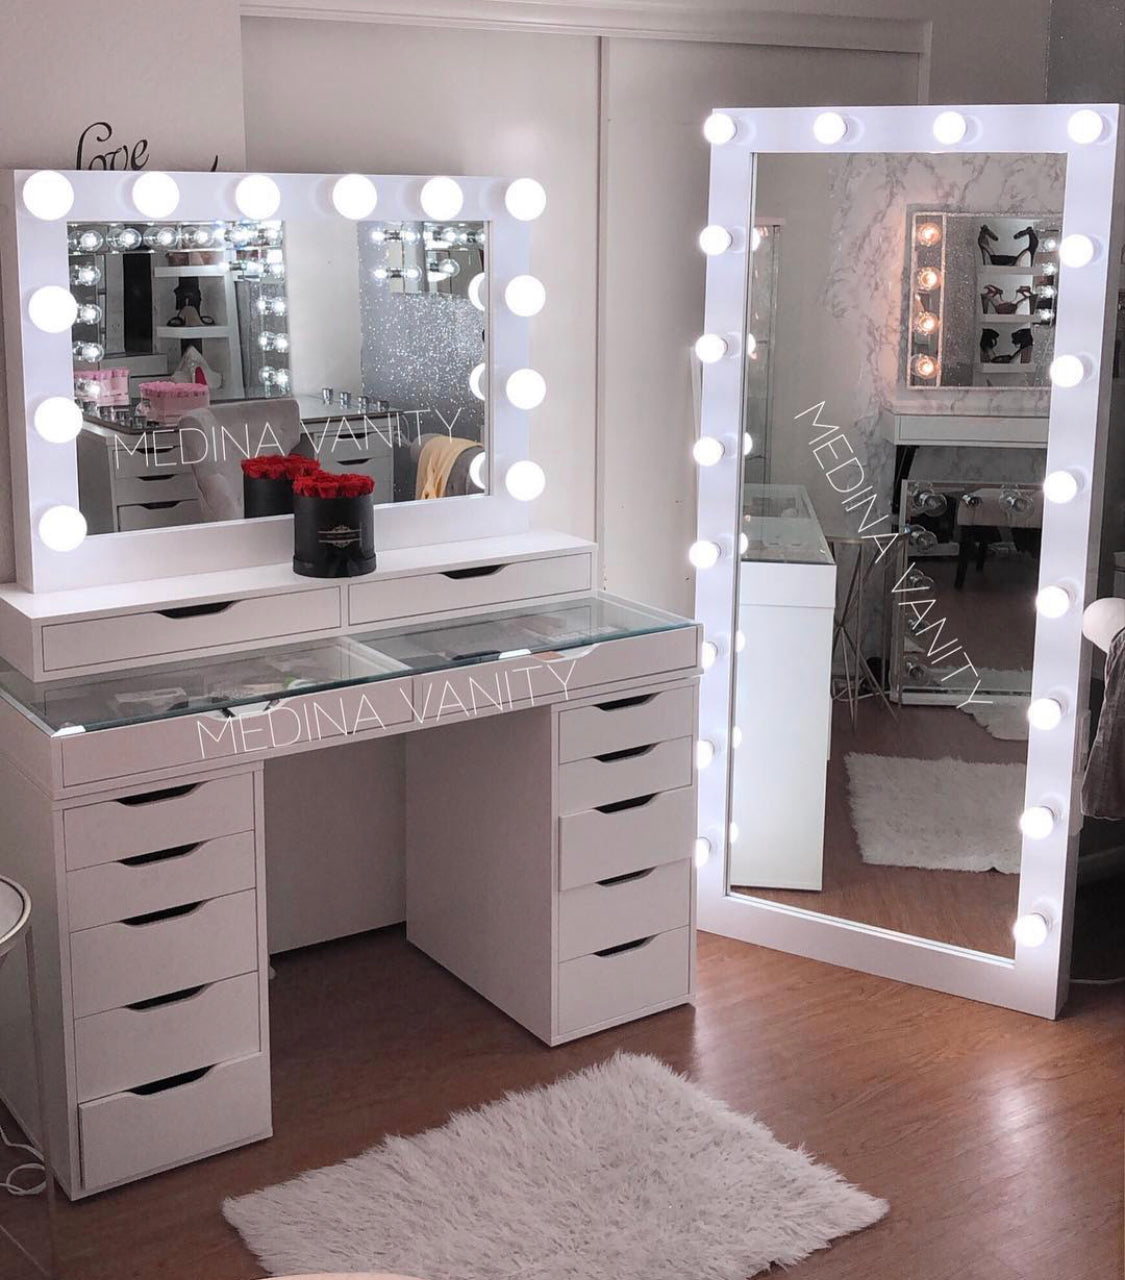 Hollywood Dream Full Length Vanity Mirror Medina Vanity